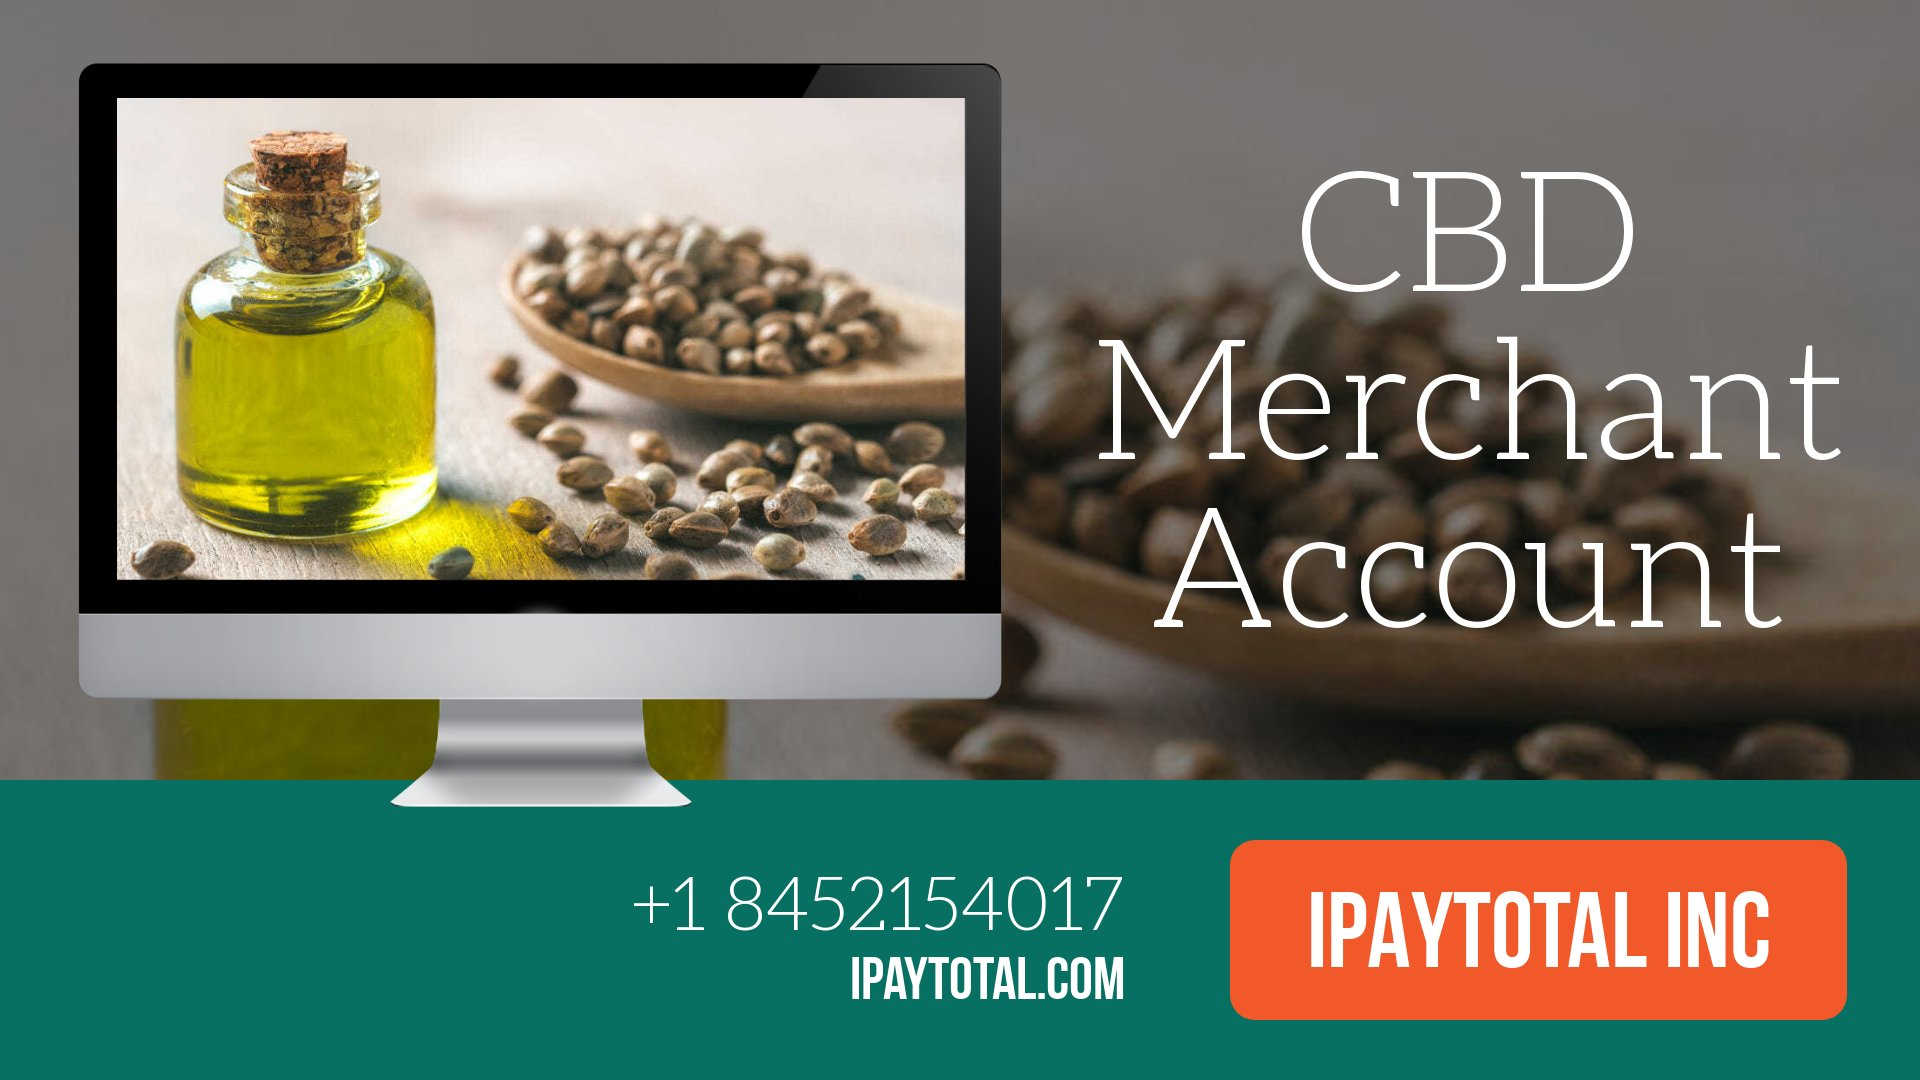 Merchant Account For Cbd Oil